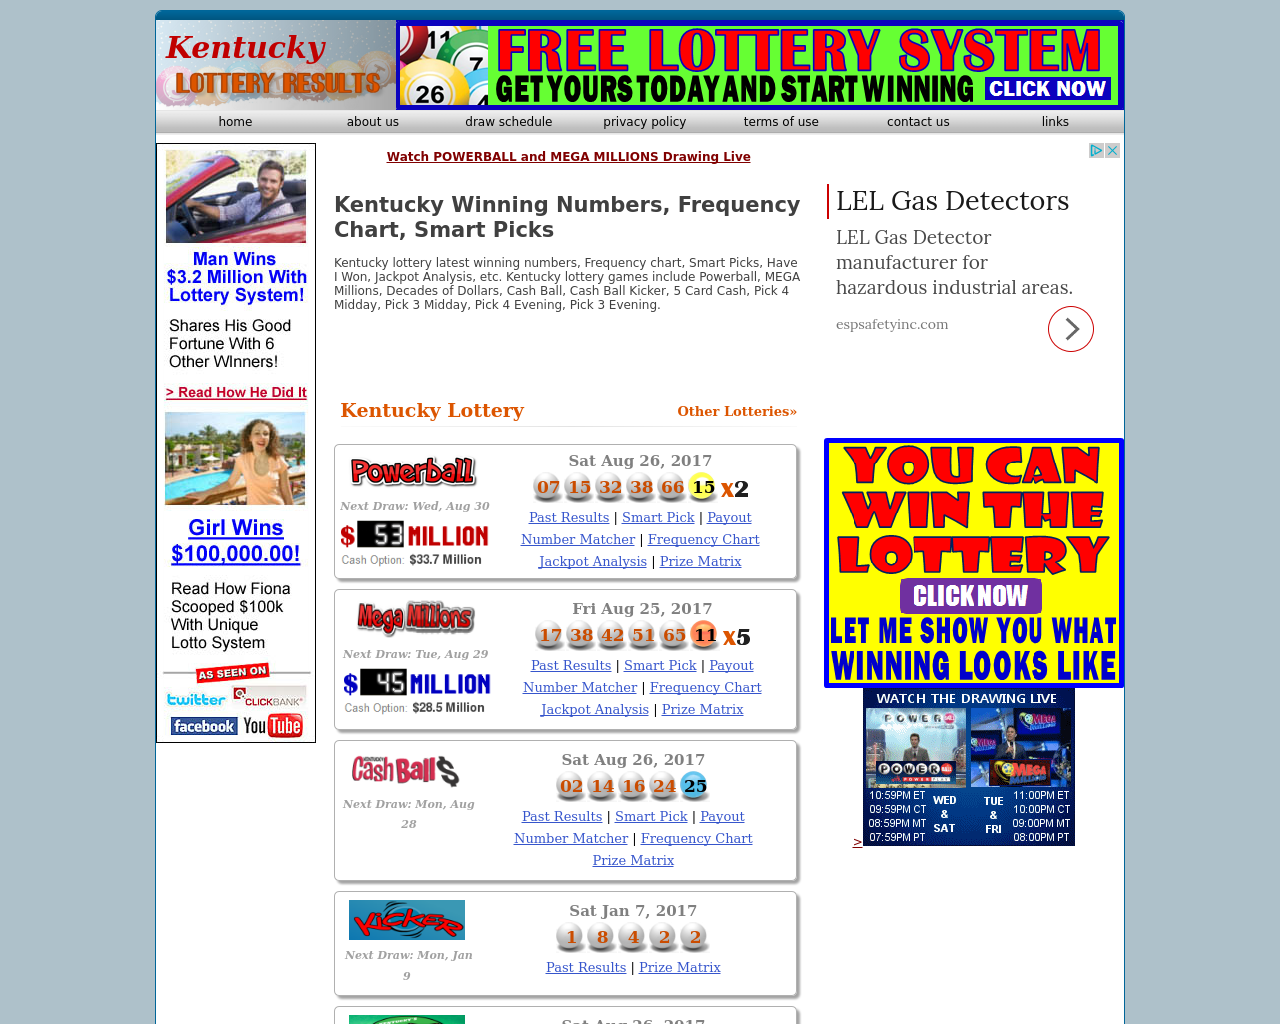 Kentucky-Lottery-Live-Advertising-Reviews-Pricing